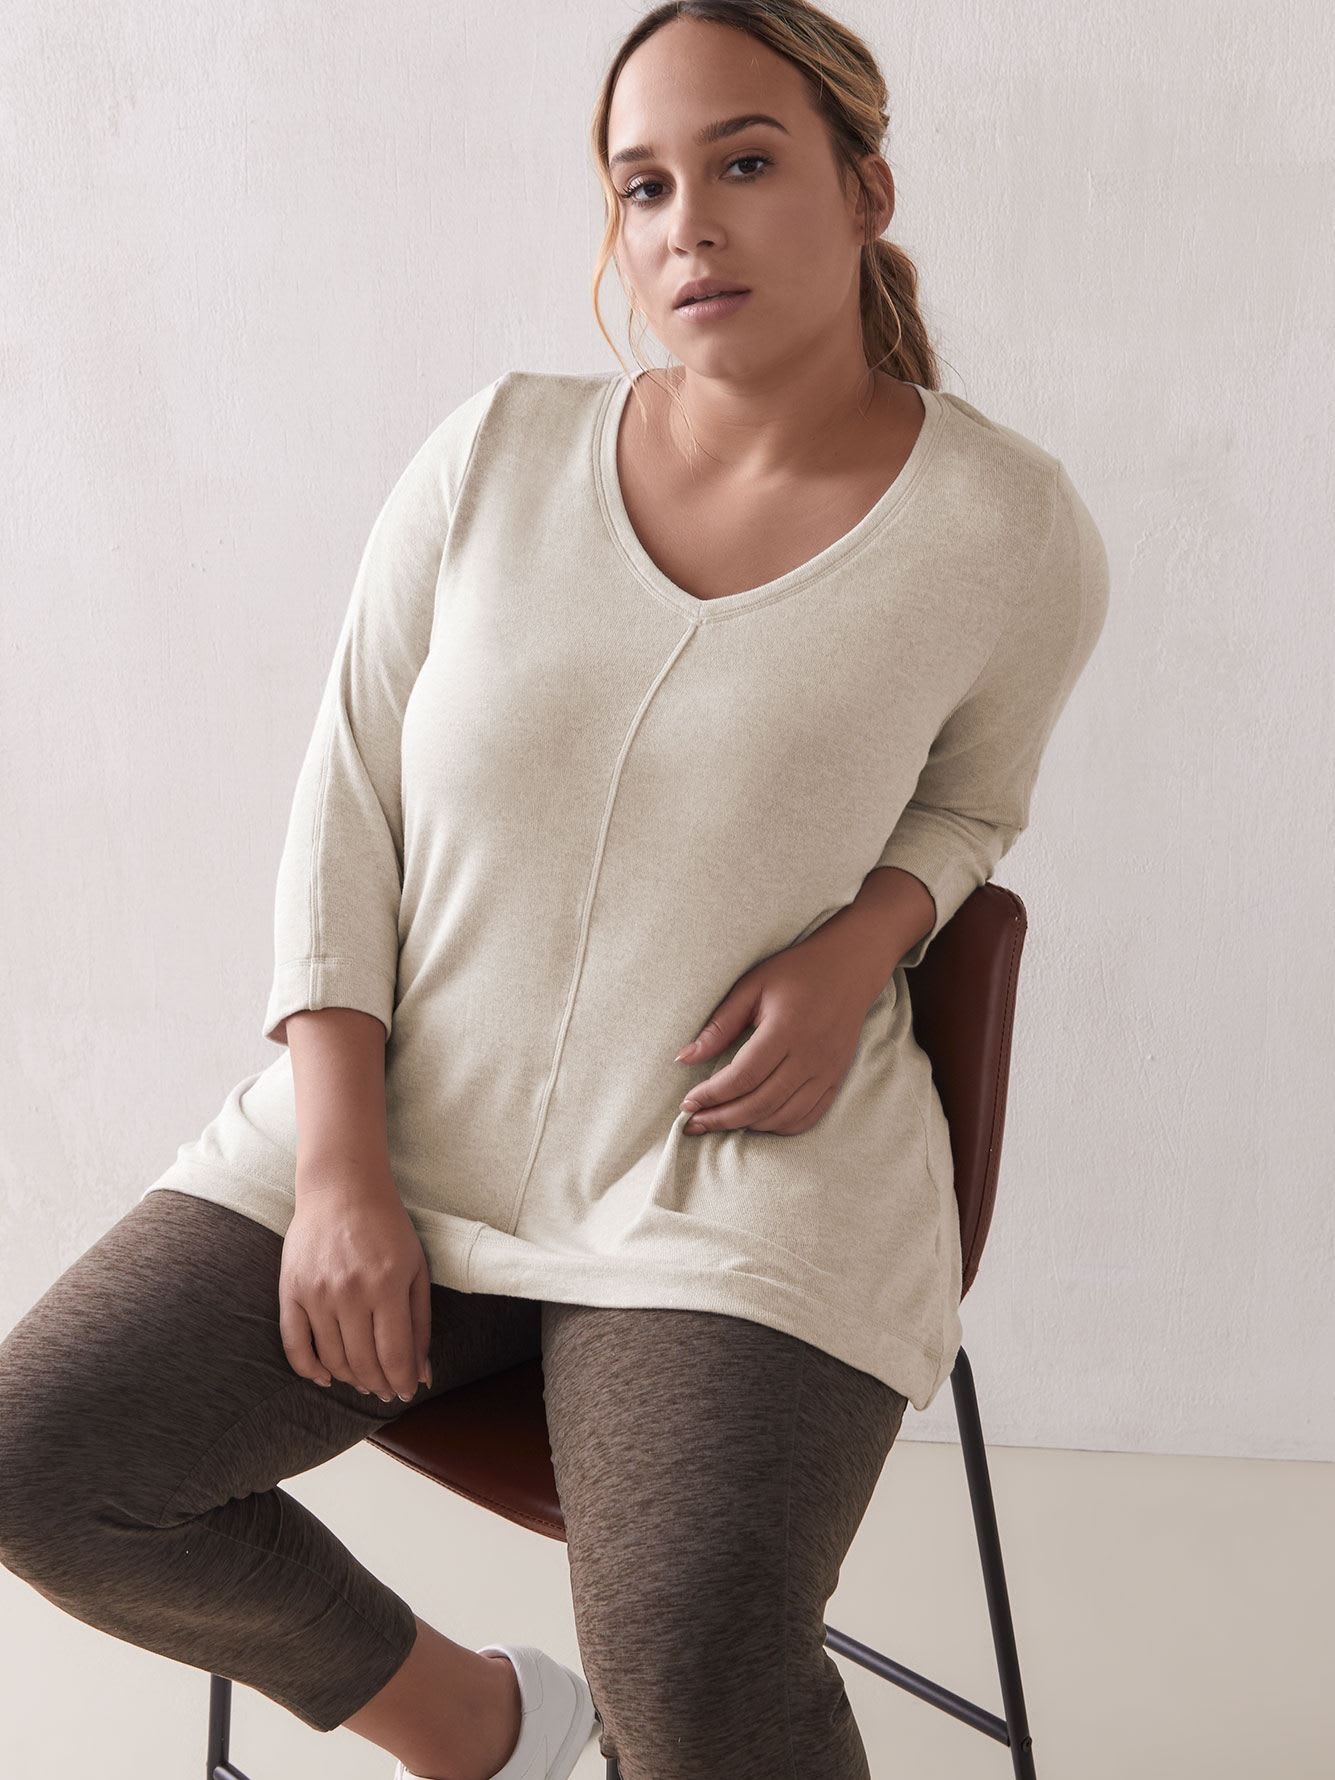 A-Line Jersey Tunic Top - ActiveZone